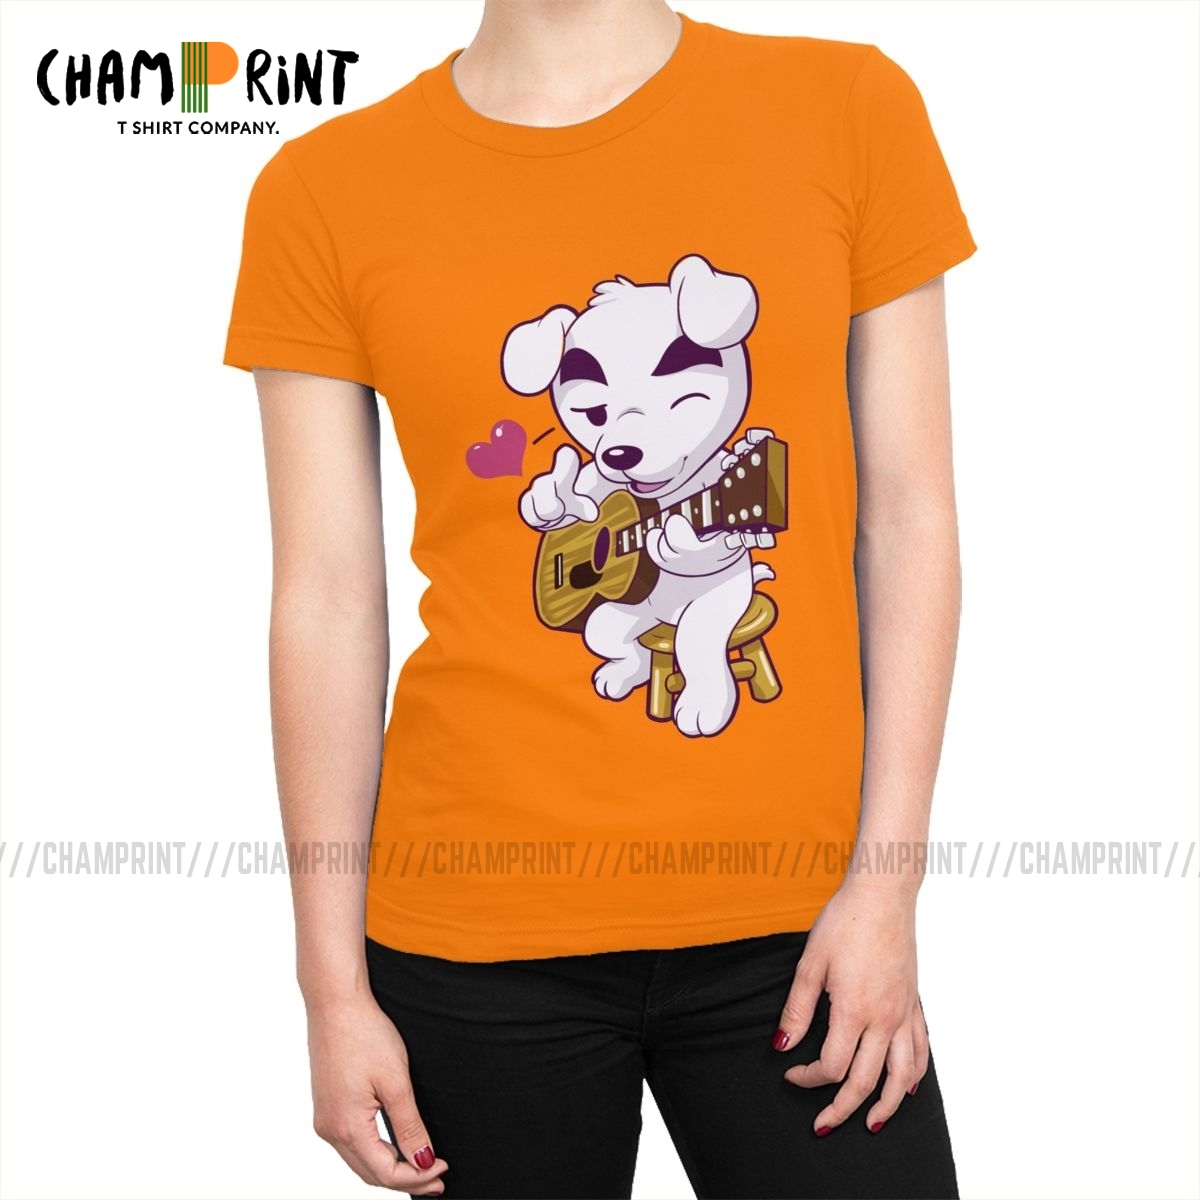 This Song Is For You T-shirt Women's All Match Animal Crossing Video Games Tshirt Ins Tee Shirt Tops Female Clothing Graphic image